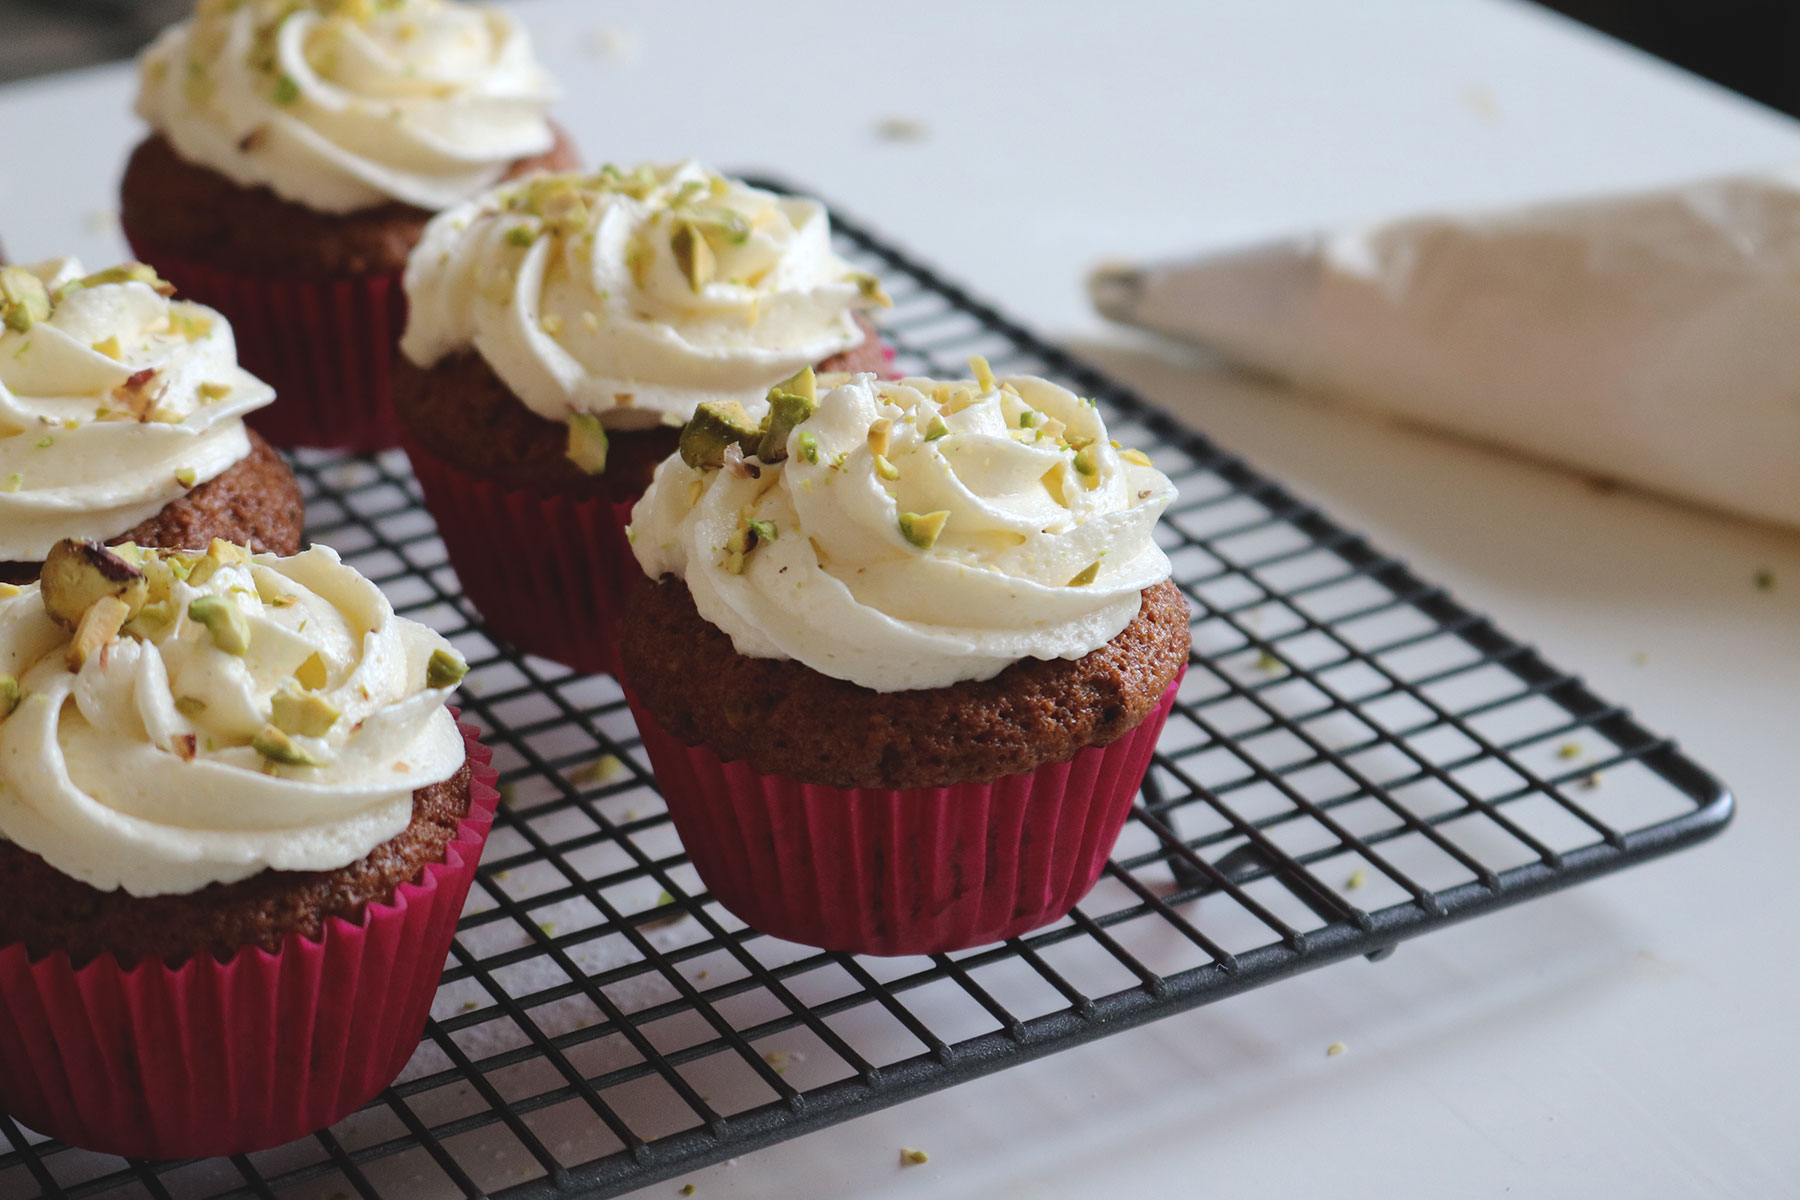 Pistachio and Carrot Cupcakes